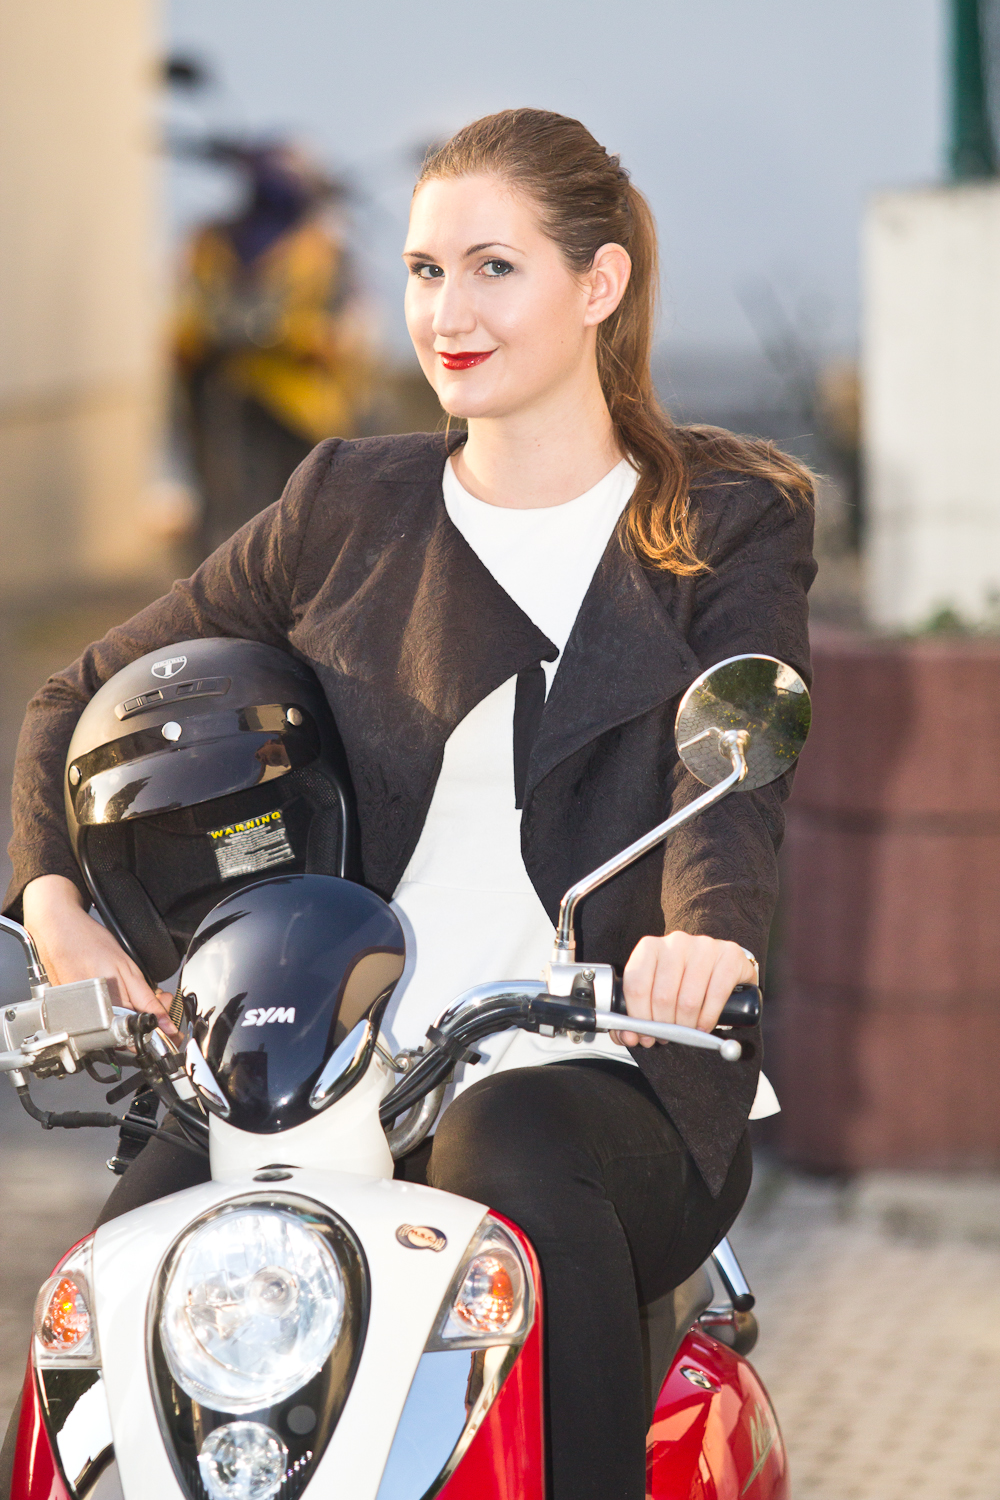 scootergirl_04